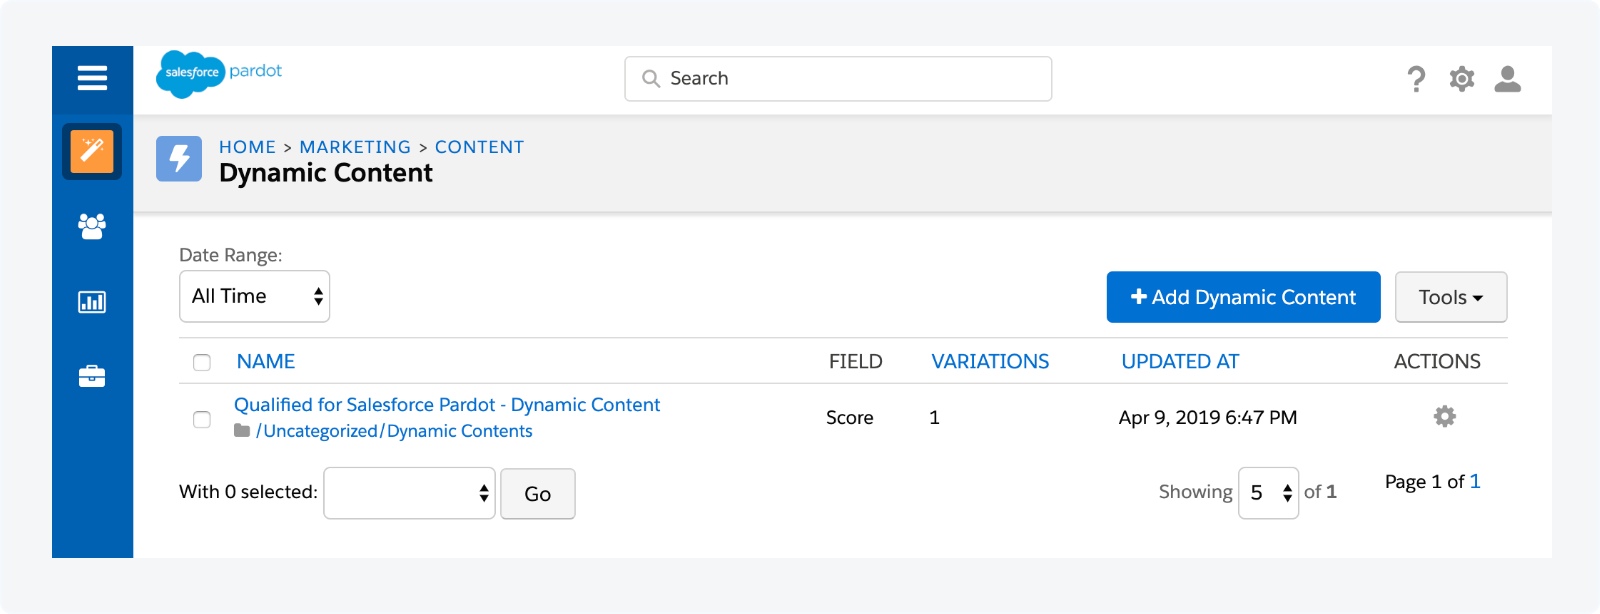 Your Pardot Dynamic Content has now been created